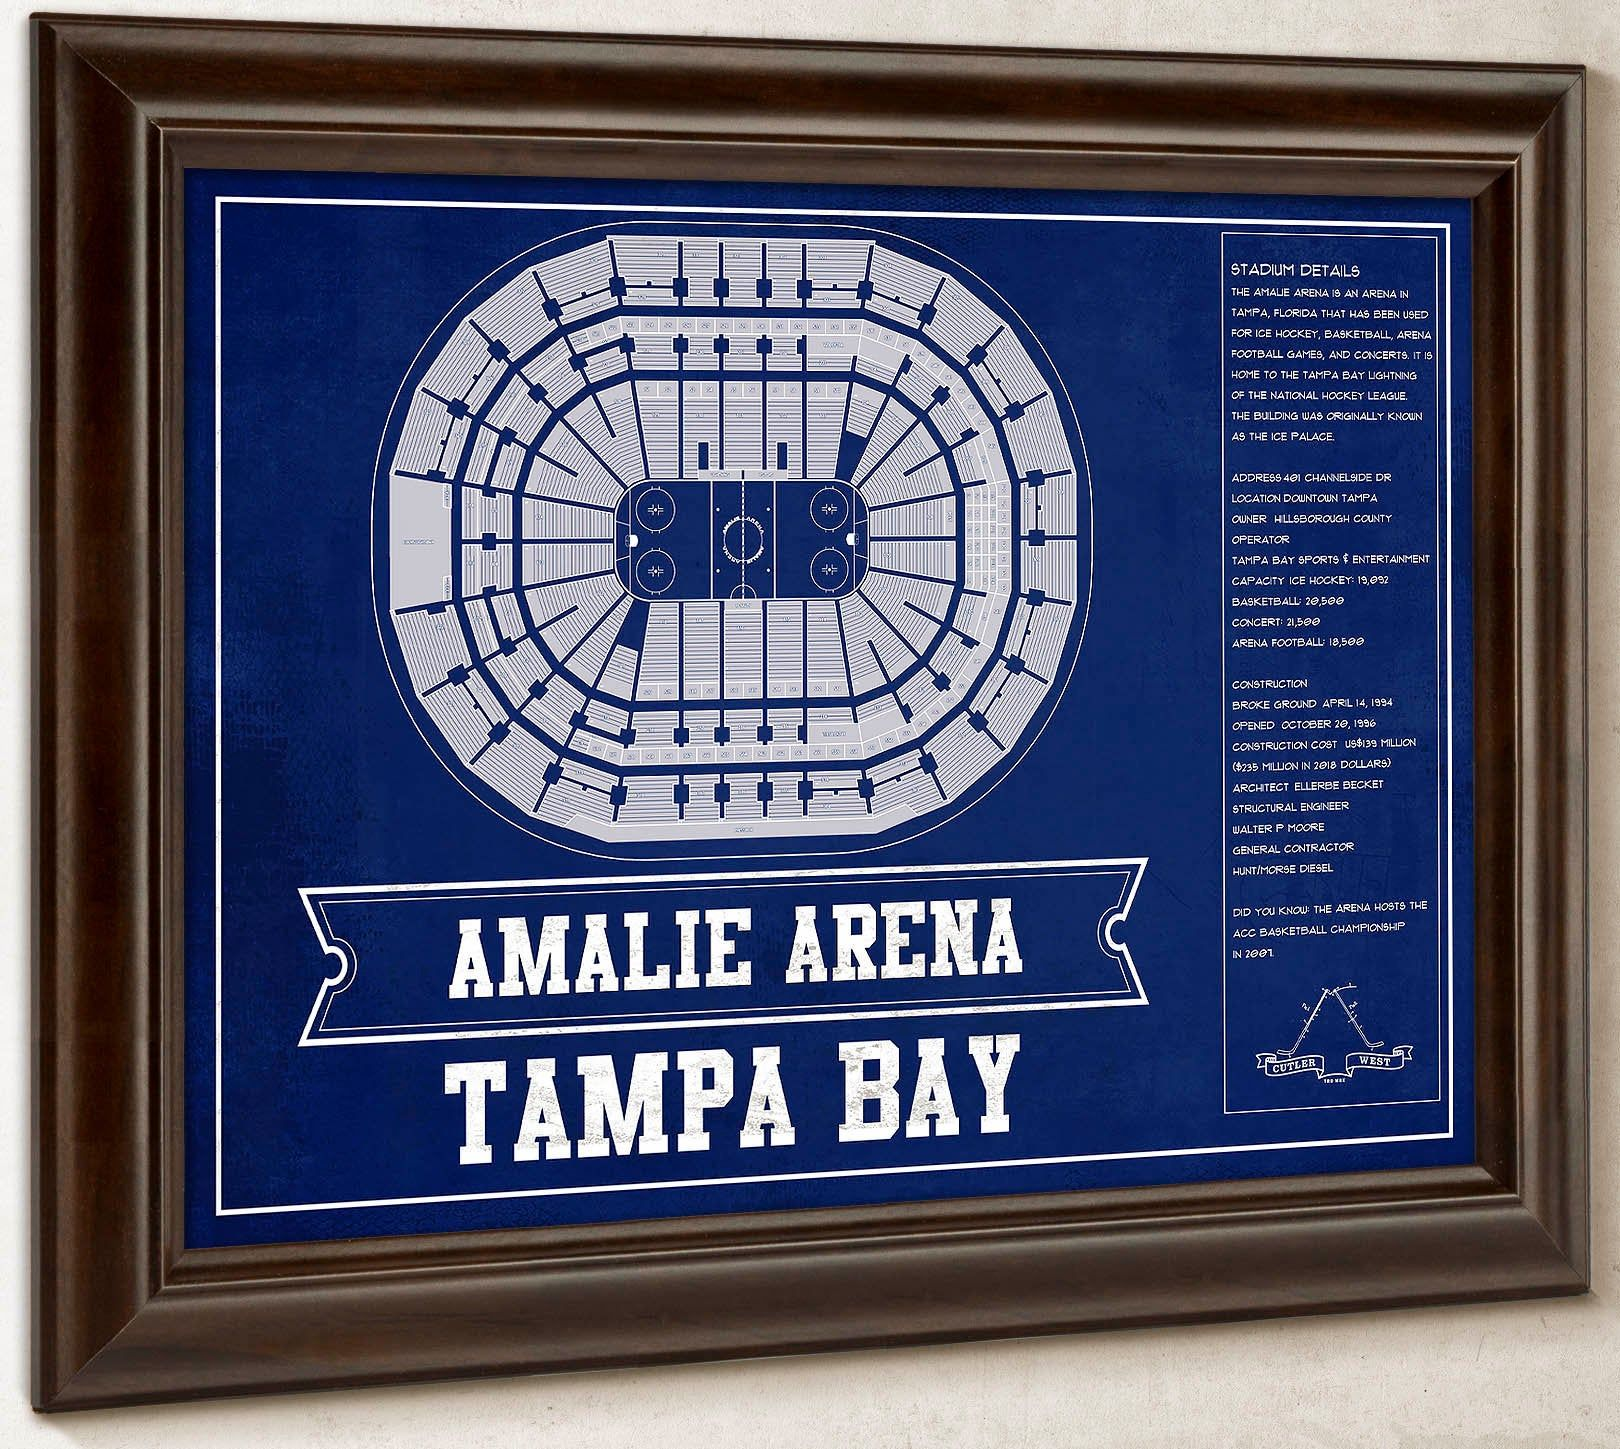 Tampa Bay Lightning Amalie Arena Seating Chart Vintage Etsy In 2020 Tampa Bay Lightning Tampa Tampa Bay Lightning Hockey